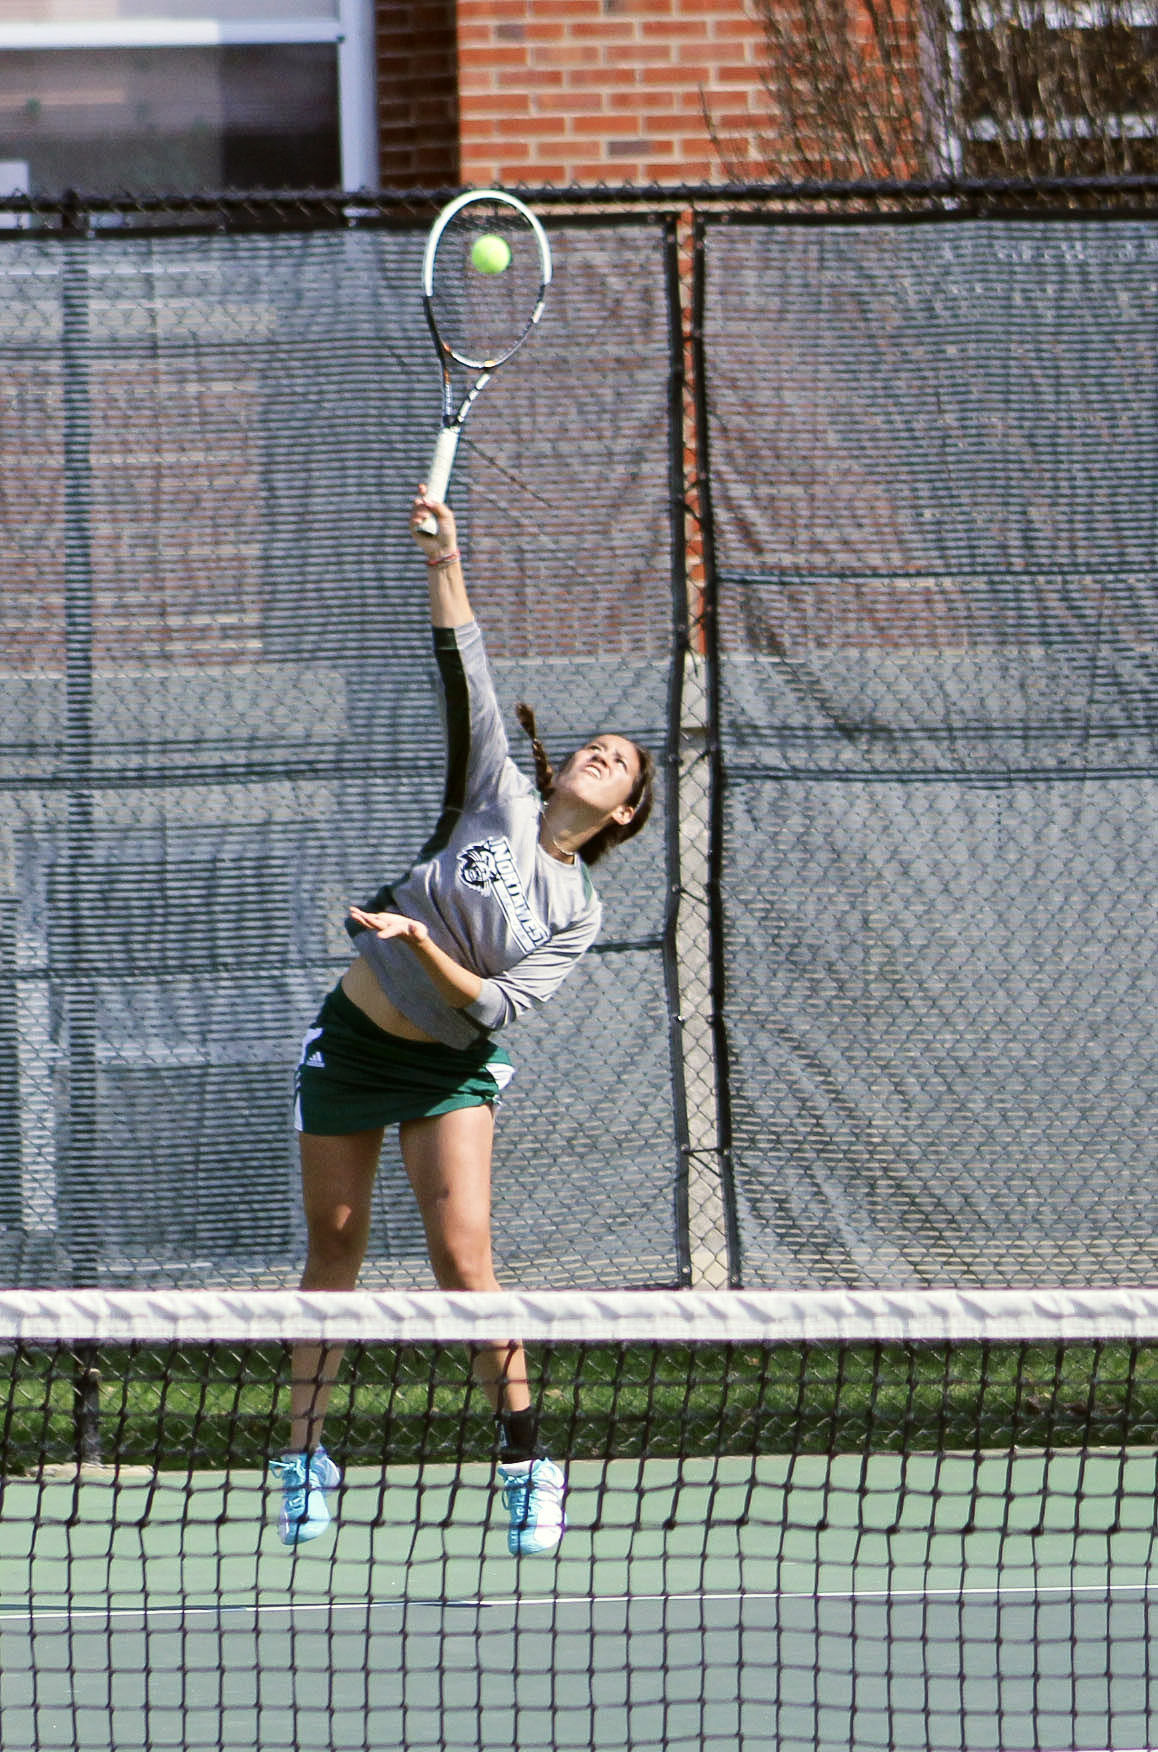 quesada senior singles Kansas city, mo – northwest missouri state university women's tennis senior camila quesada has been named the miaa athlete of the week in a release.